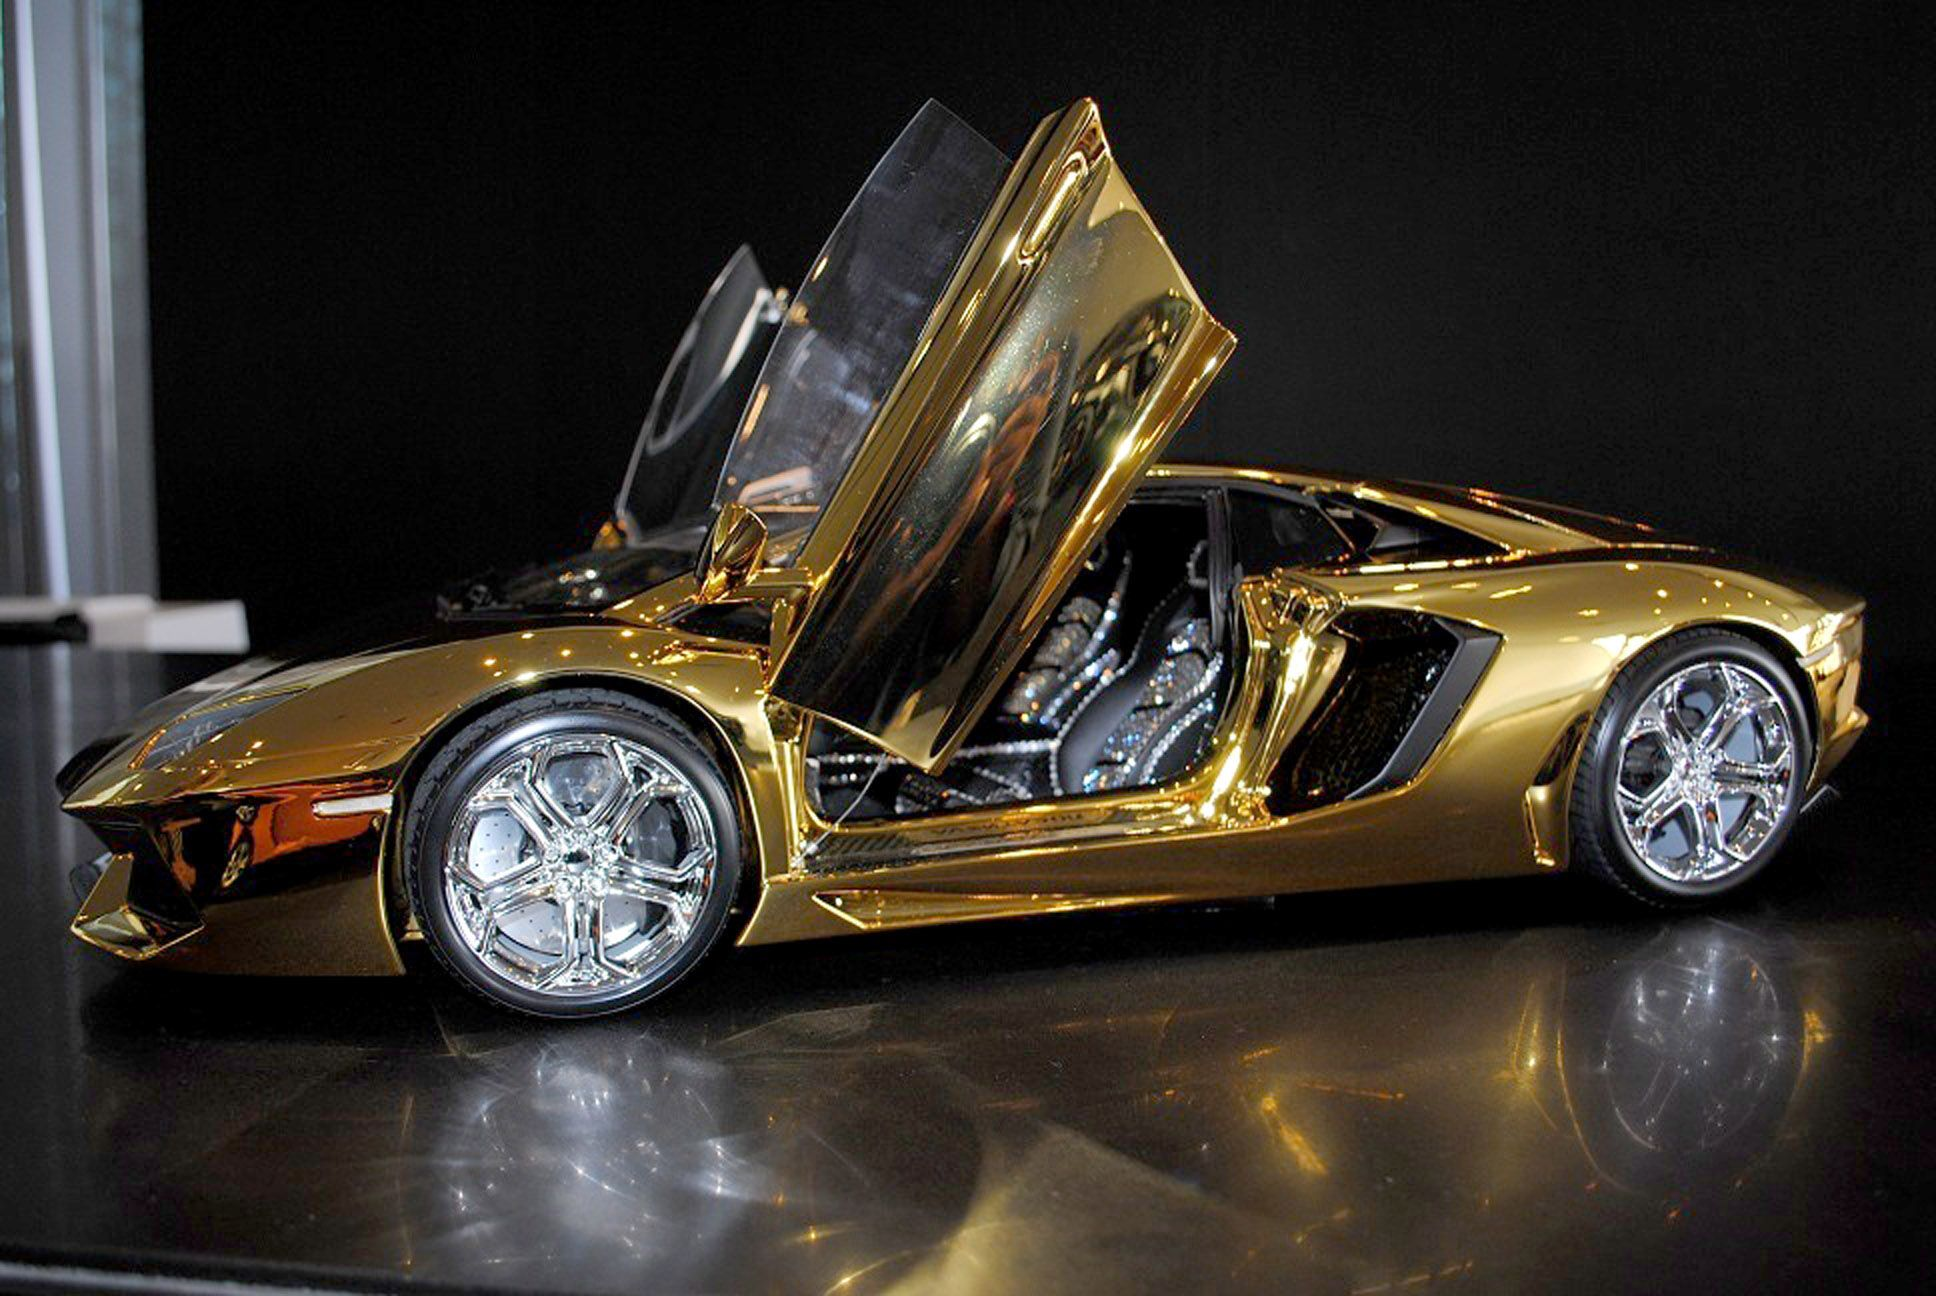 A Solid Gold Lamborghini And 6 Other Supercars Super Cars Gold Lamborghini Expensive Cars